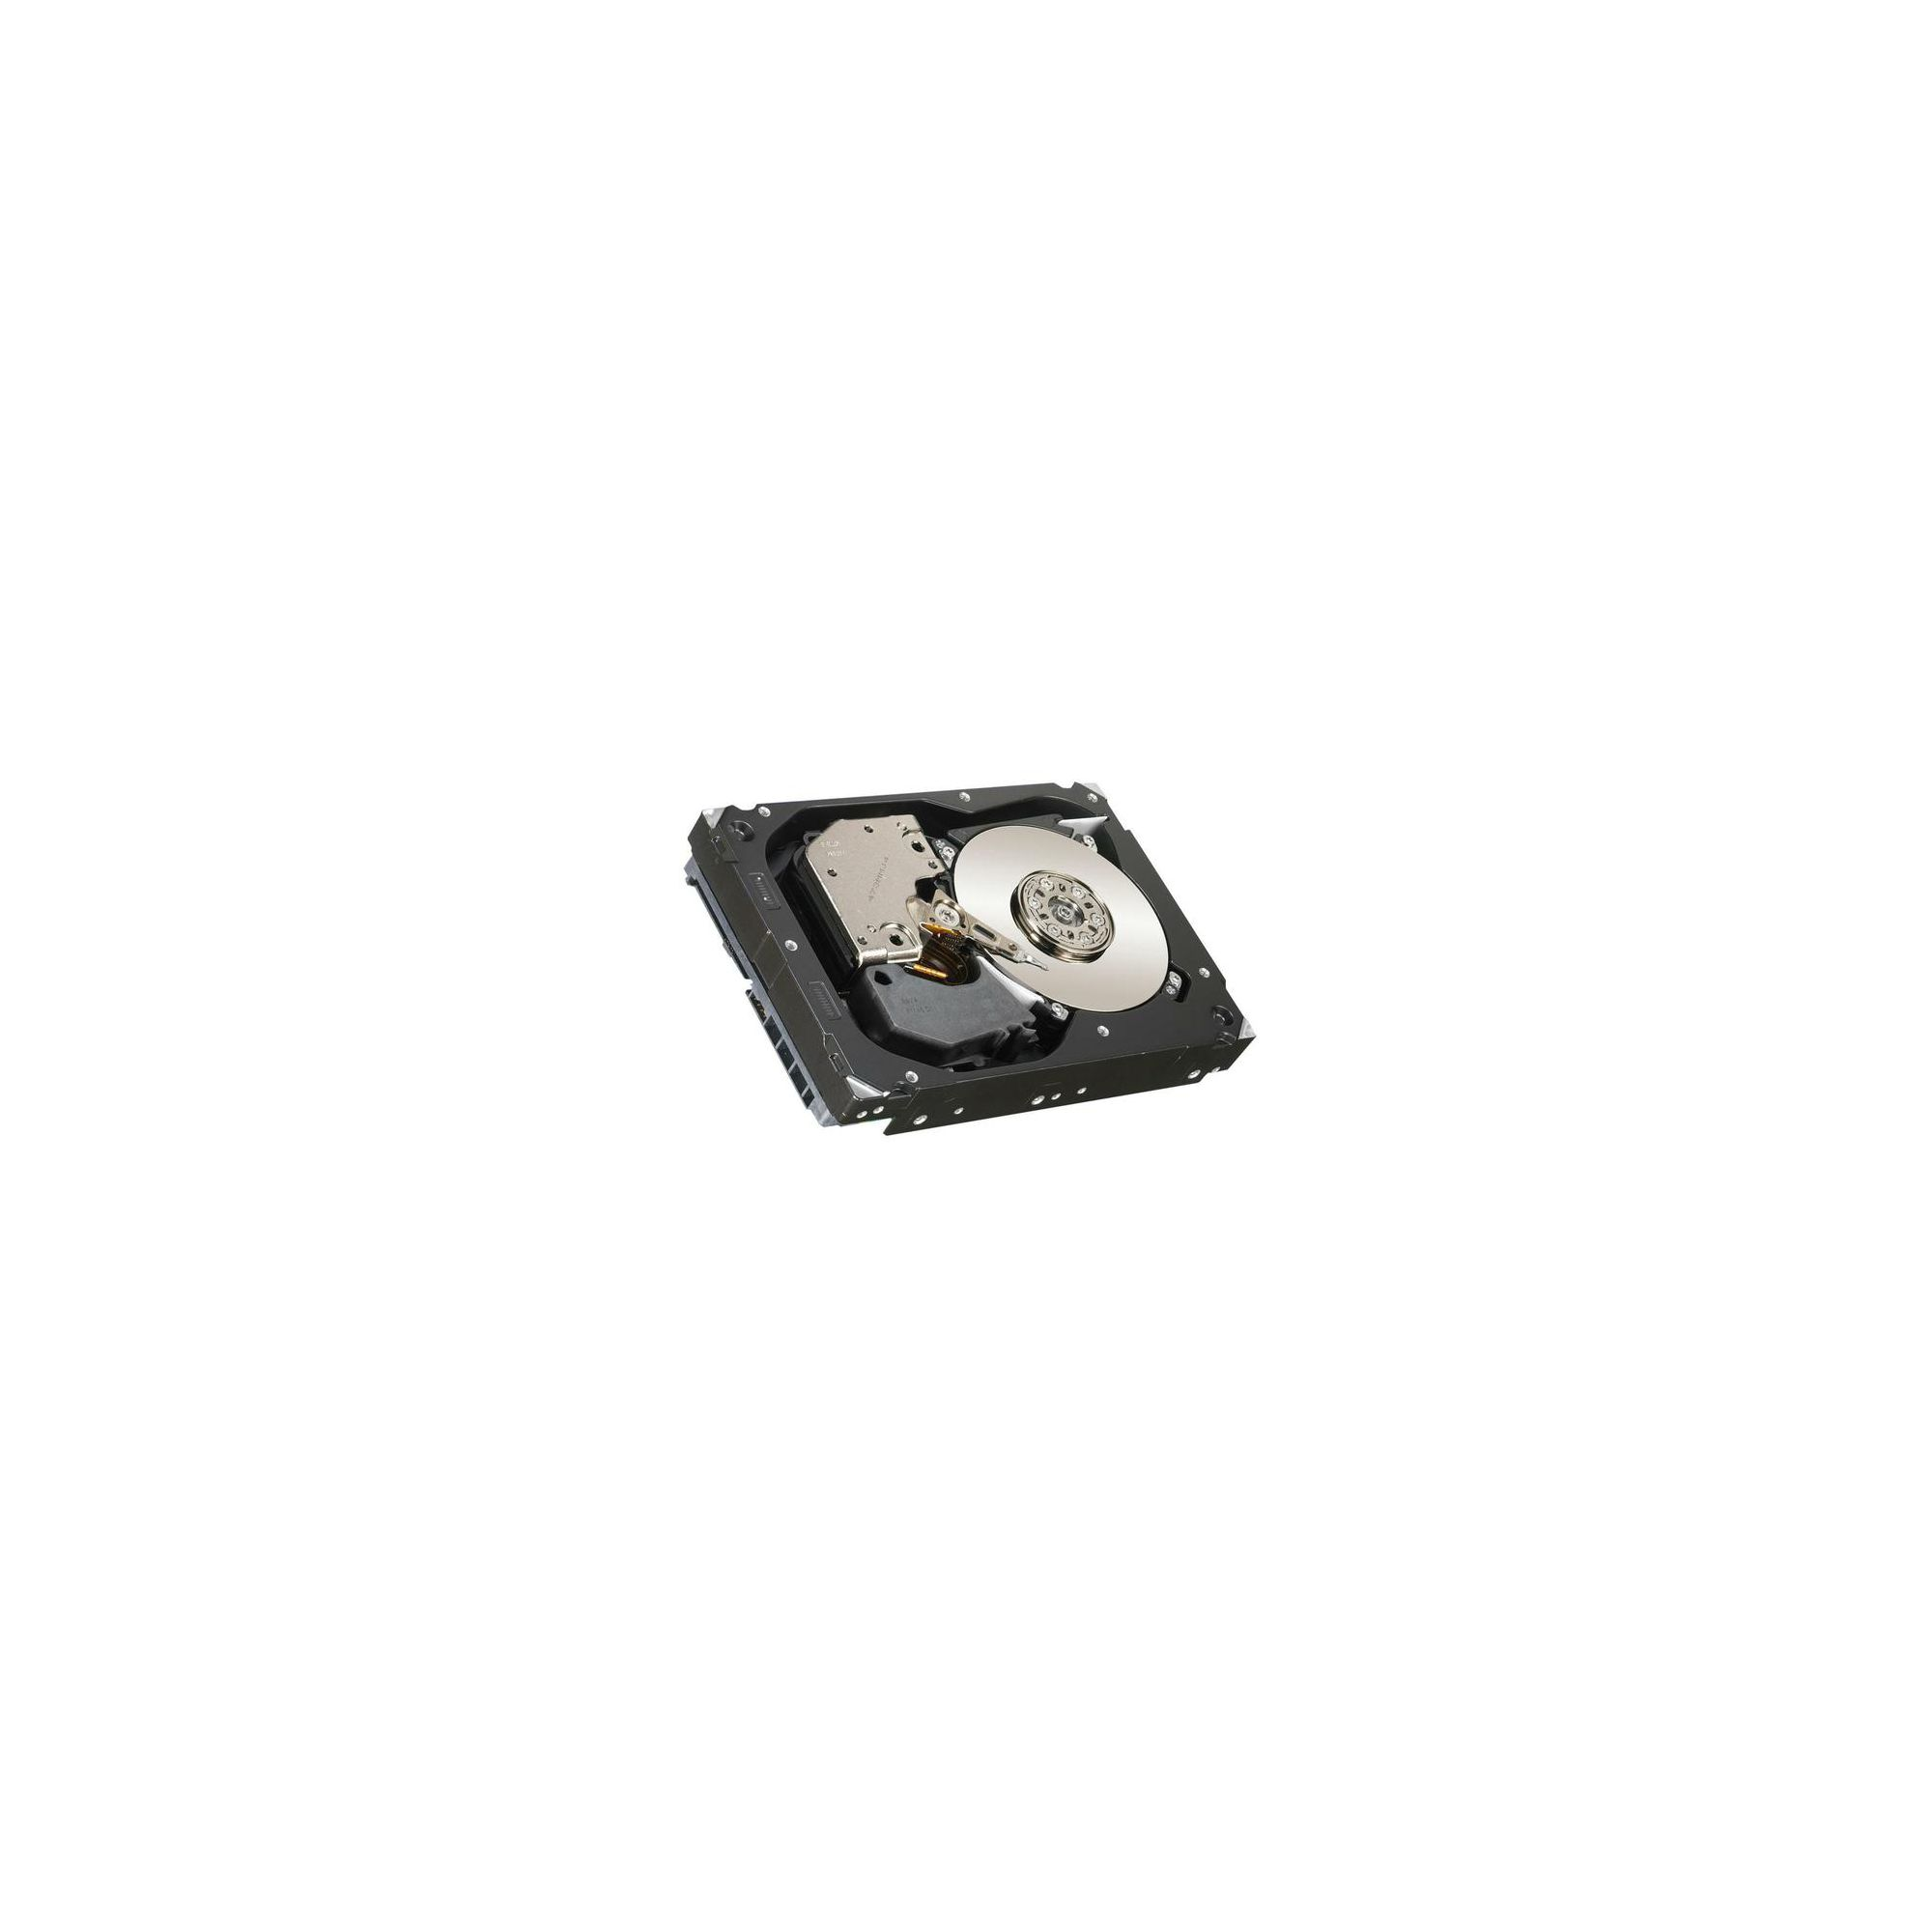 Hewlett-Packard P2000 600GB 6G SAS 15K rpm LFF Dual Port Enterprise Hard Drive at Tescos Direct